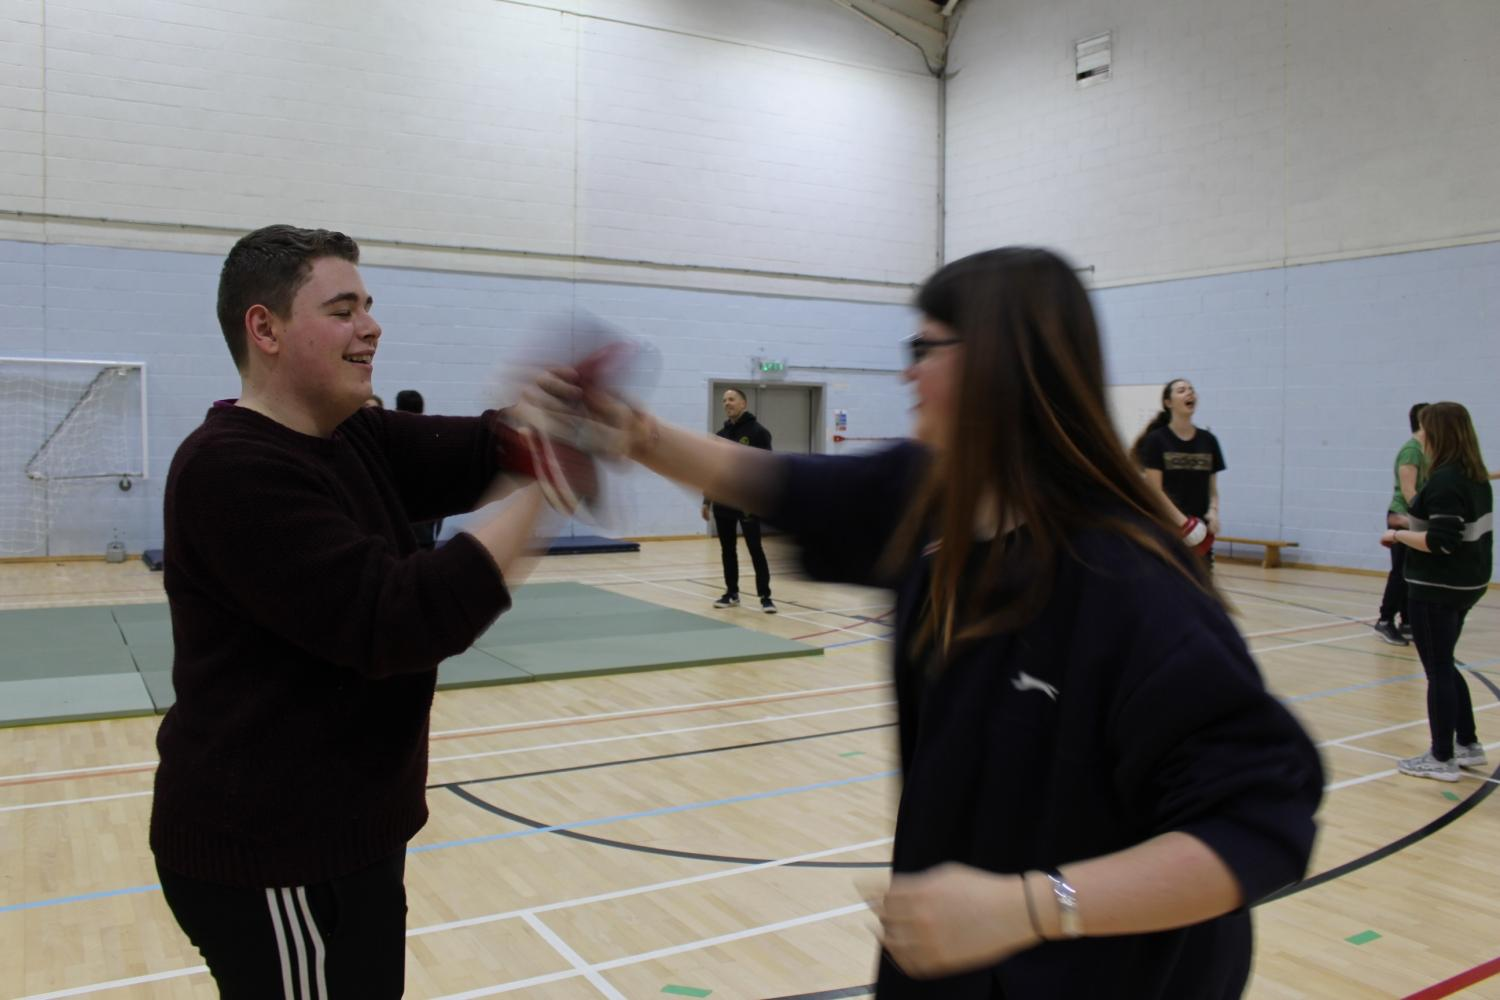 Students took part in a self-defence class